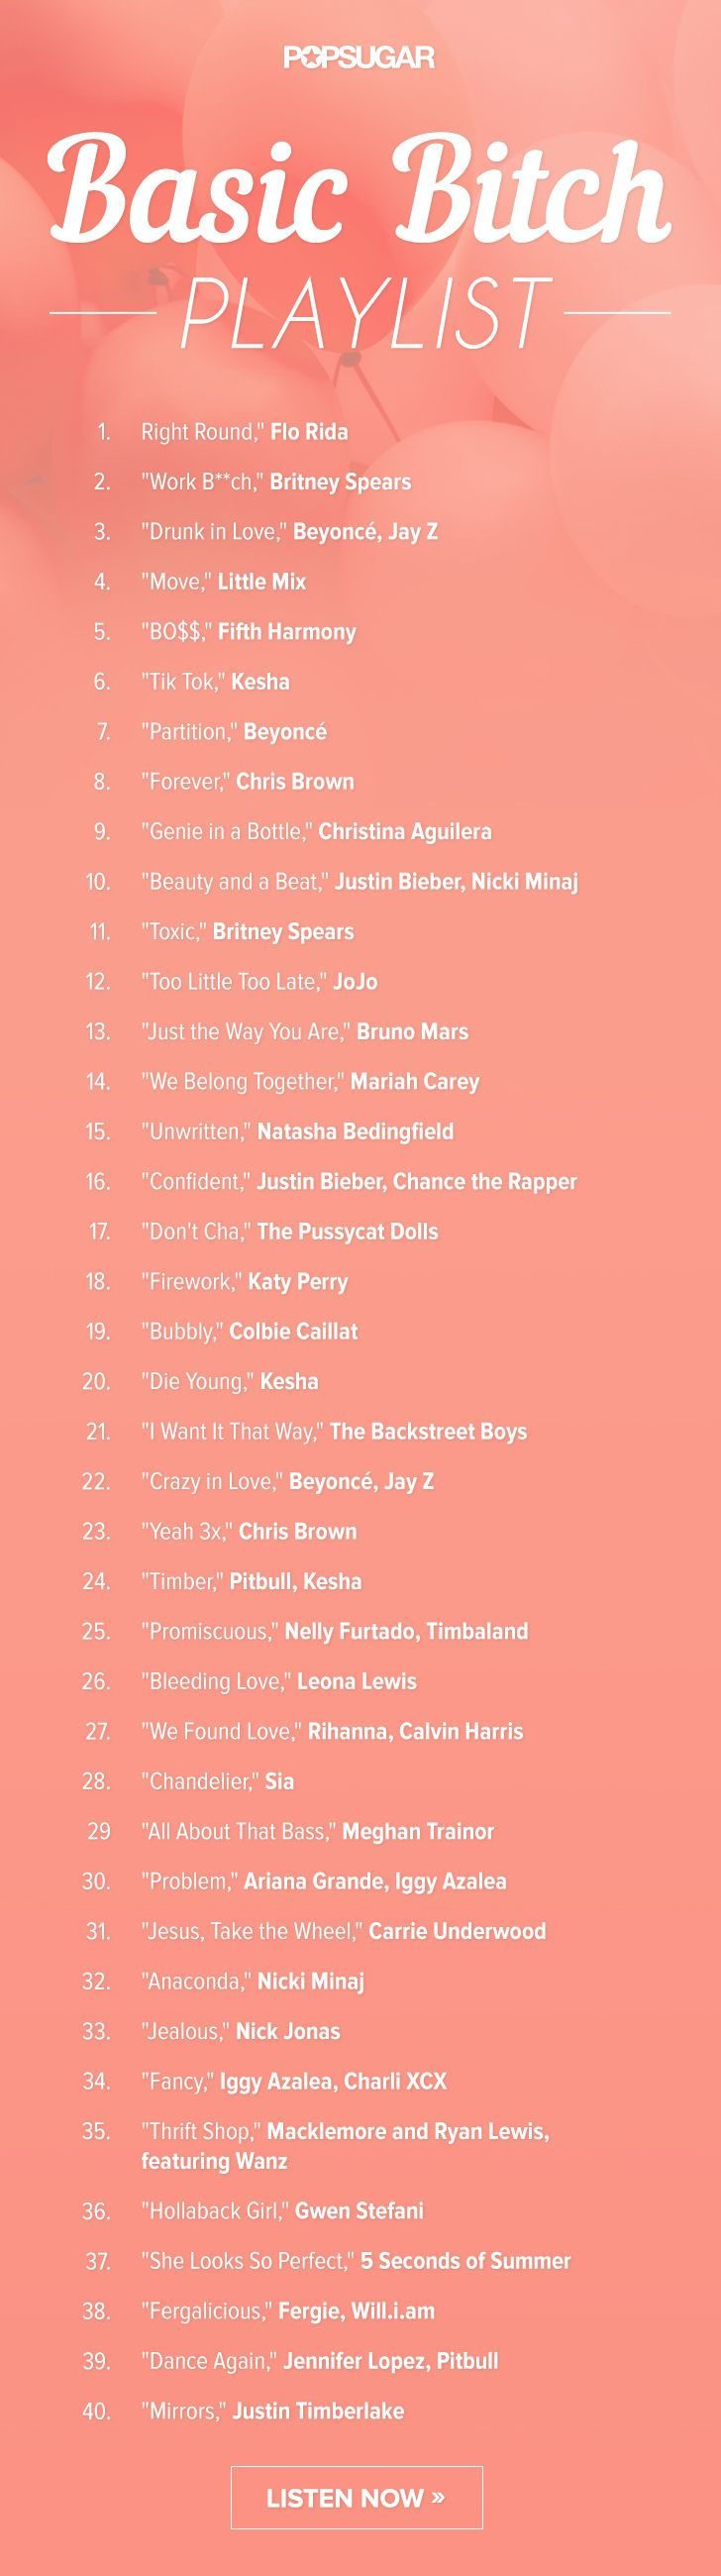 If You're a Basic B*tch, You Will Love This Playlist